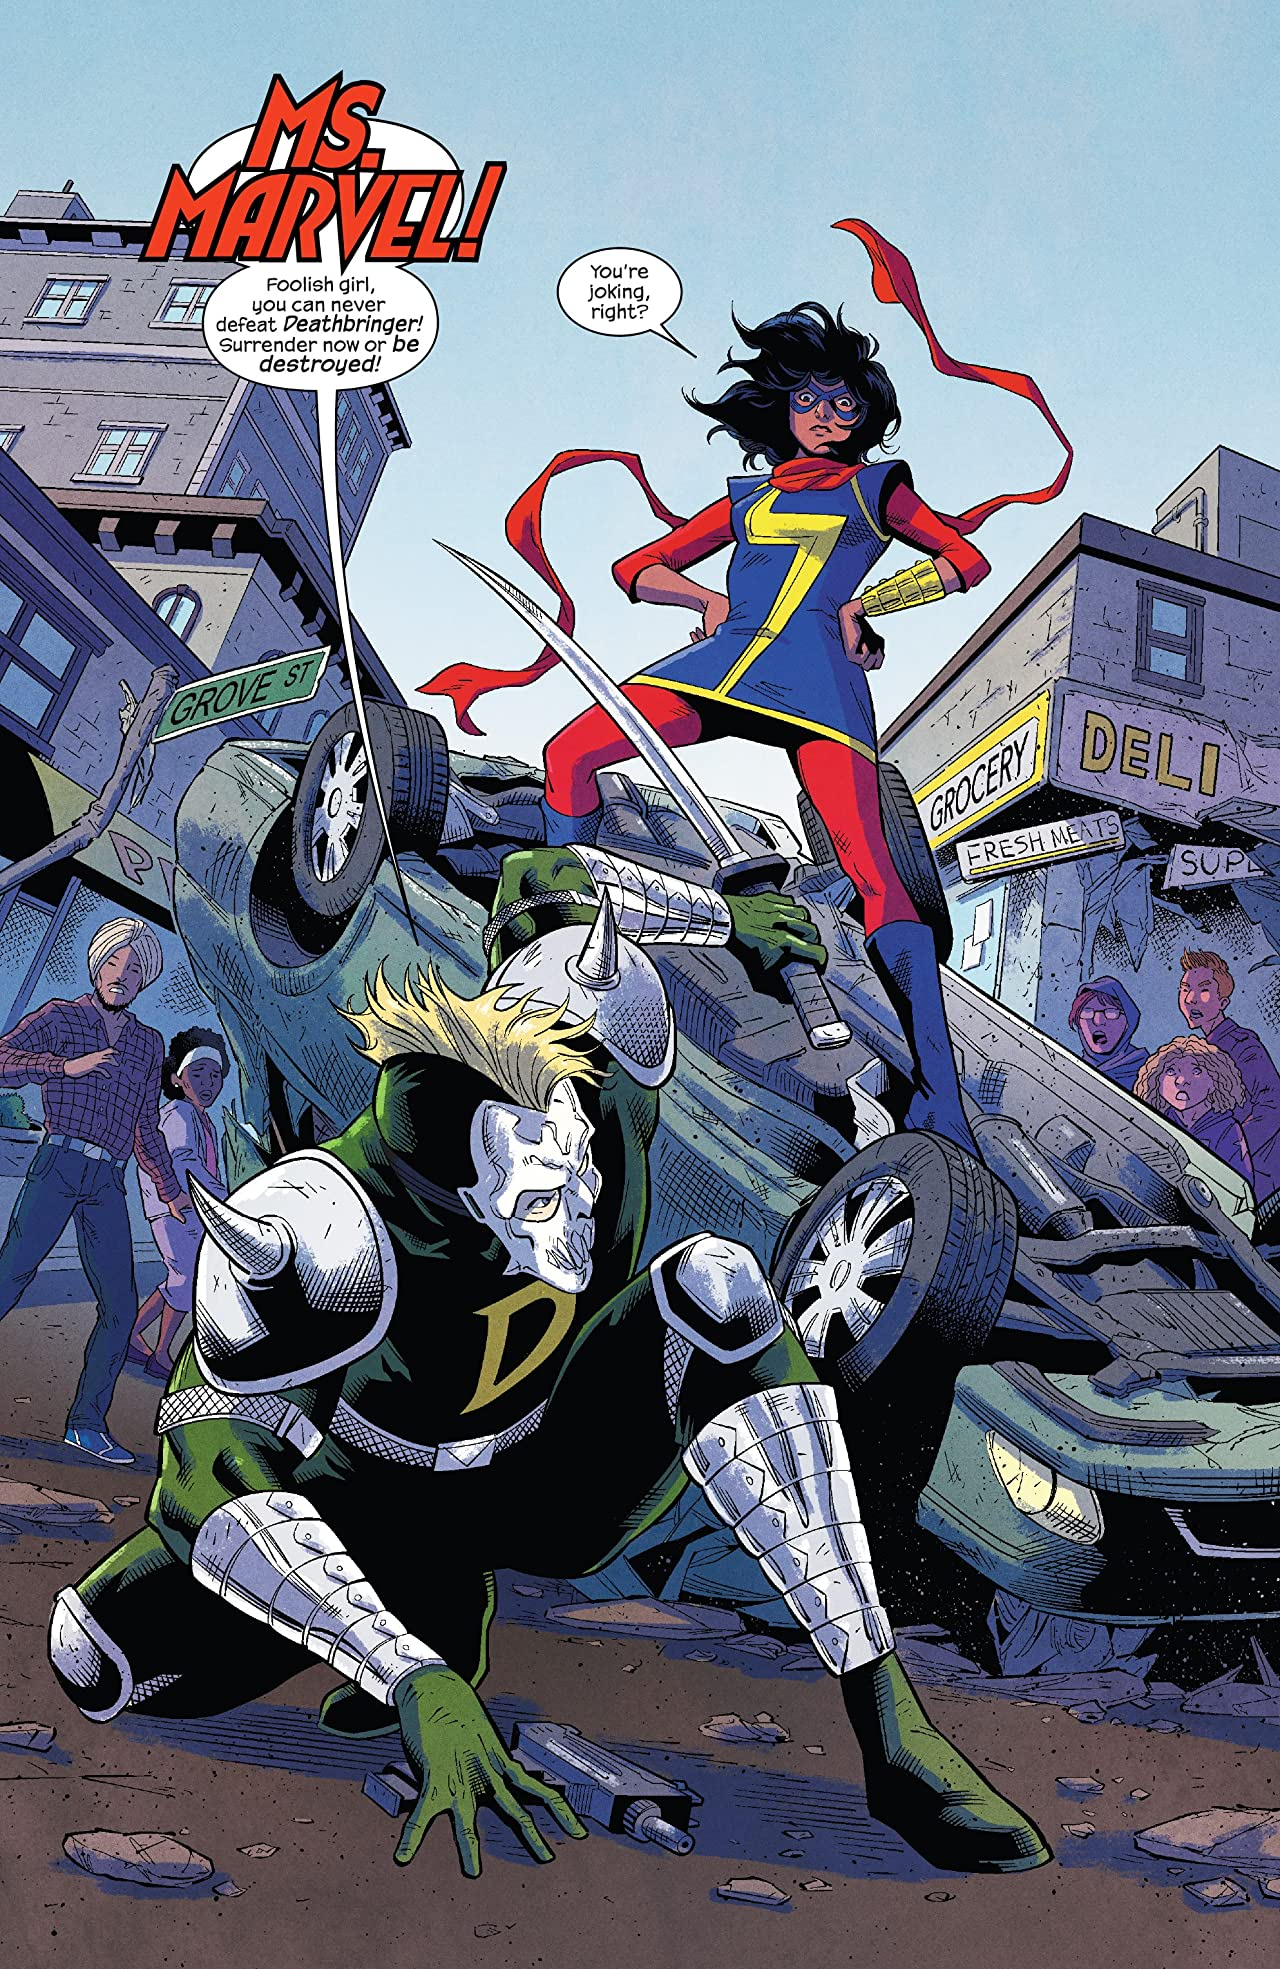 Magnificent Ms. Marvel (2019-) #1